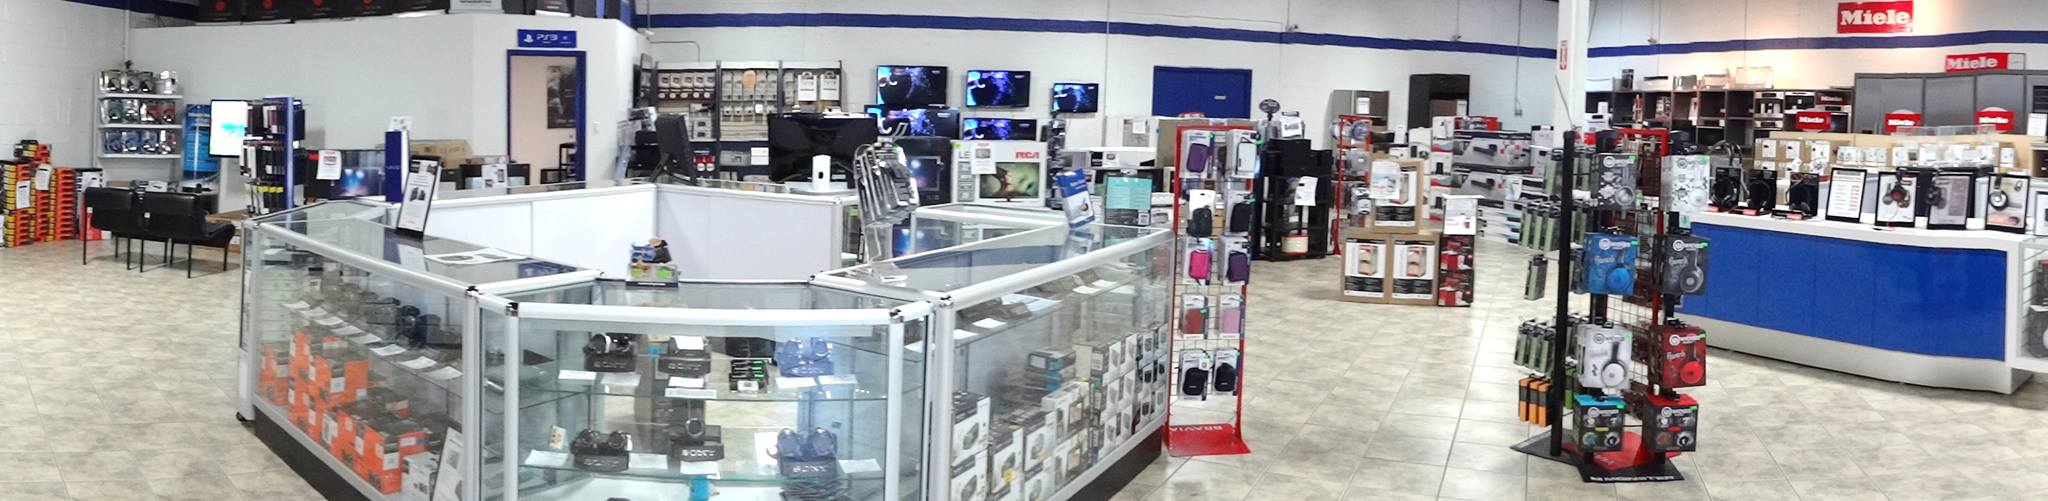 About us mtc factory outlet for Interior alternatives manufacturers outlet mall